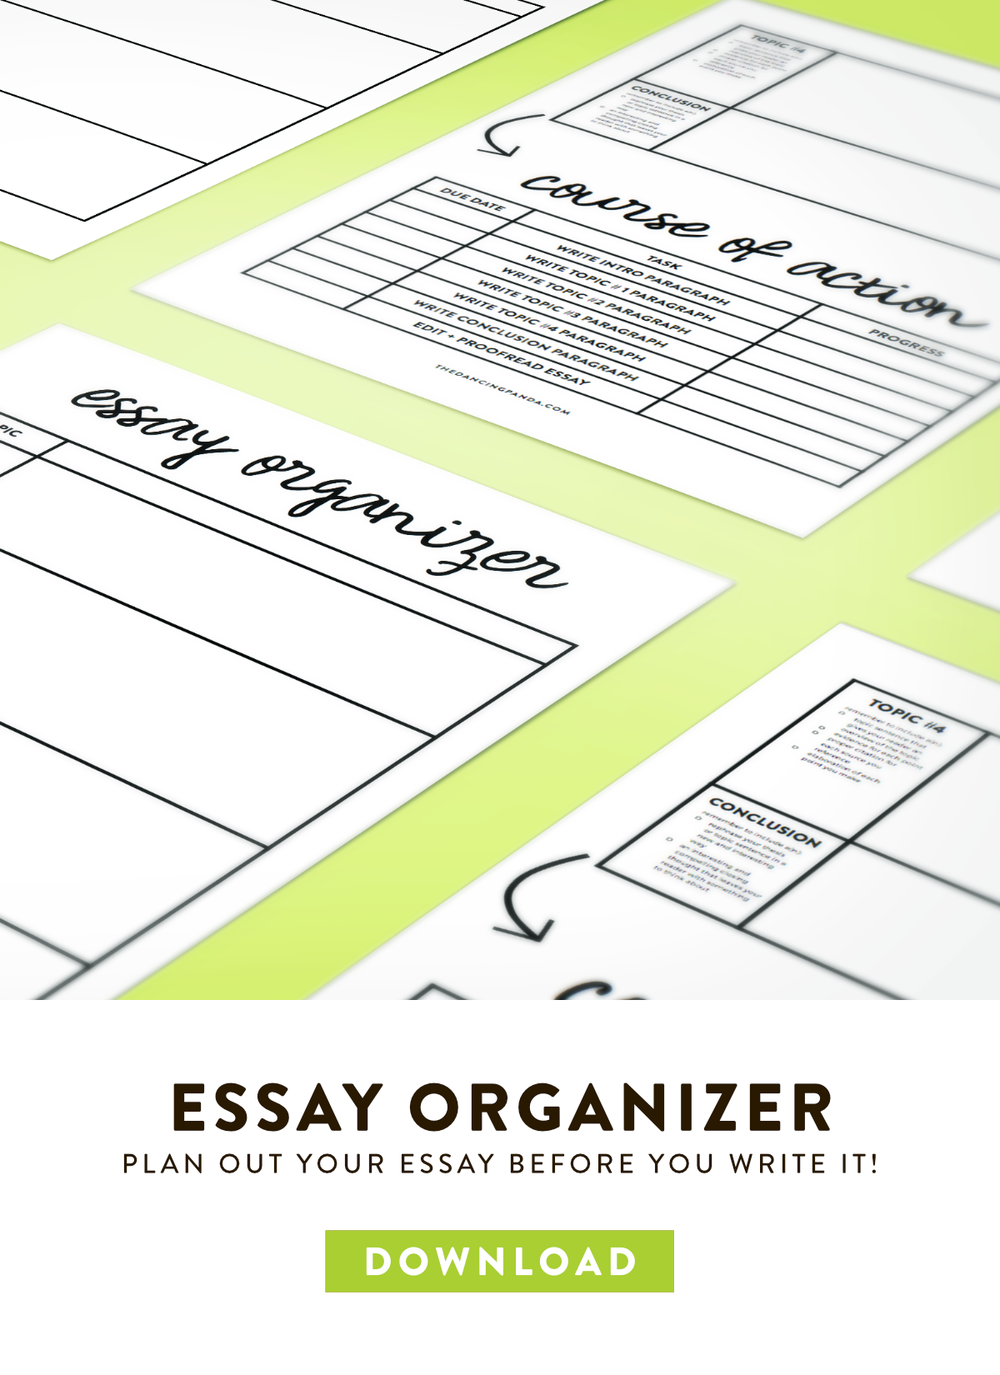 essay organizer download s.png